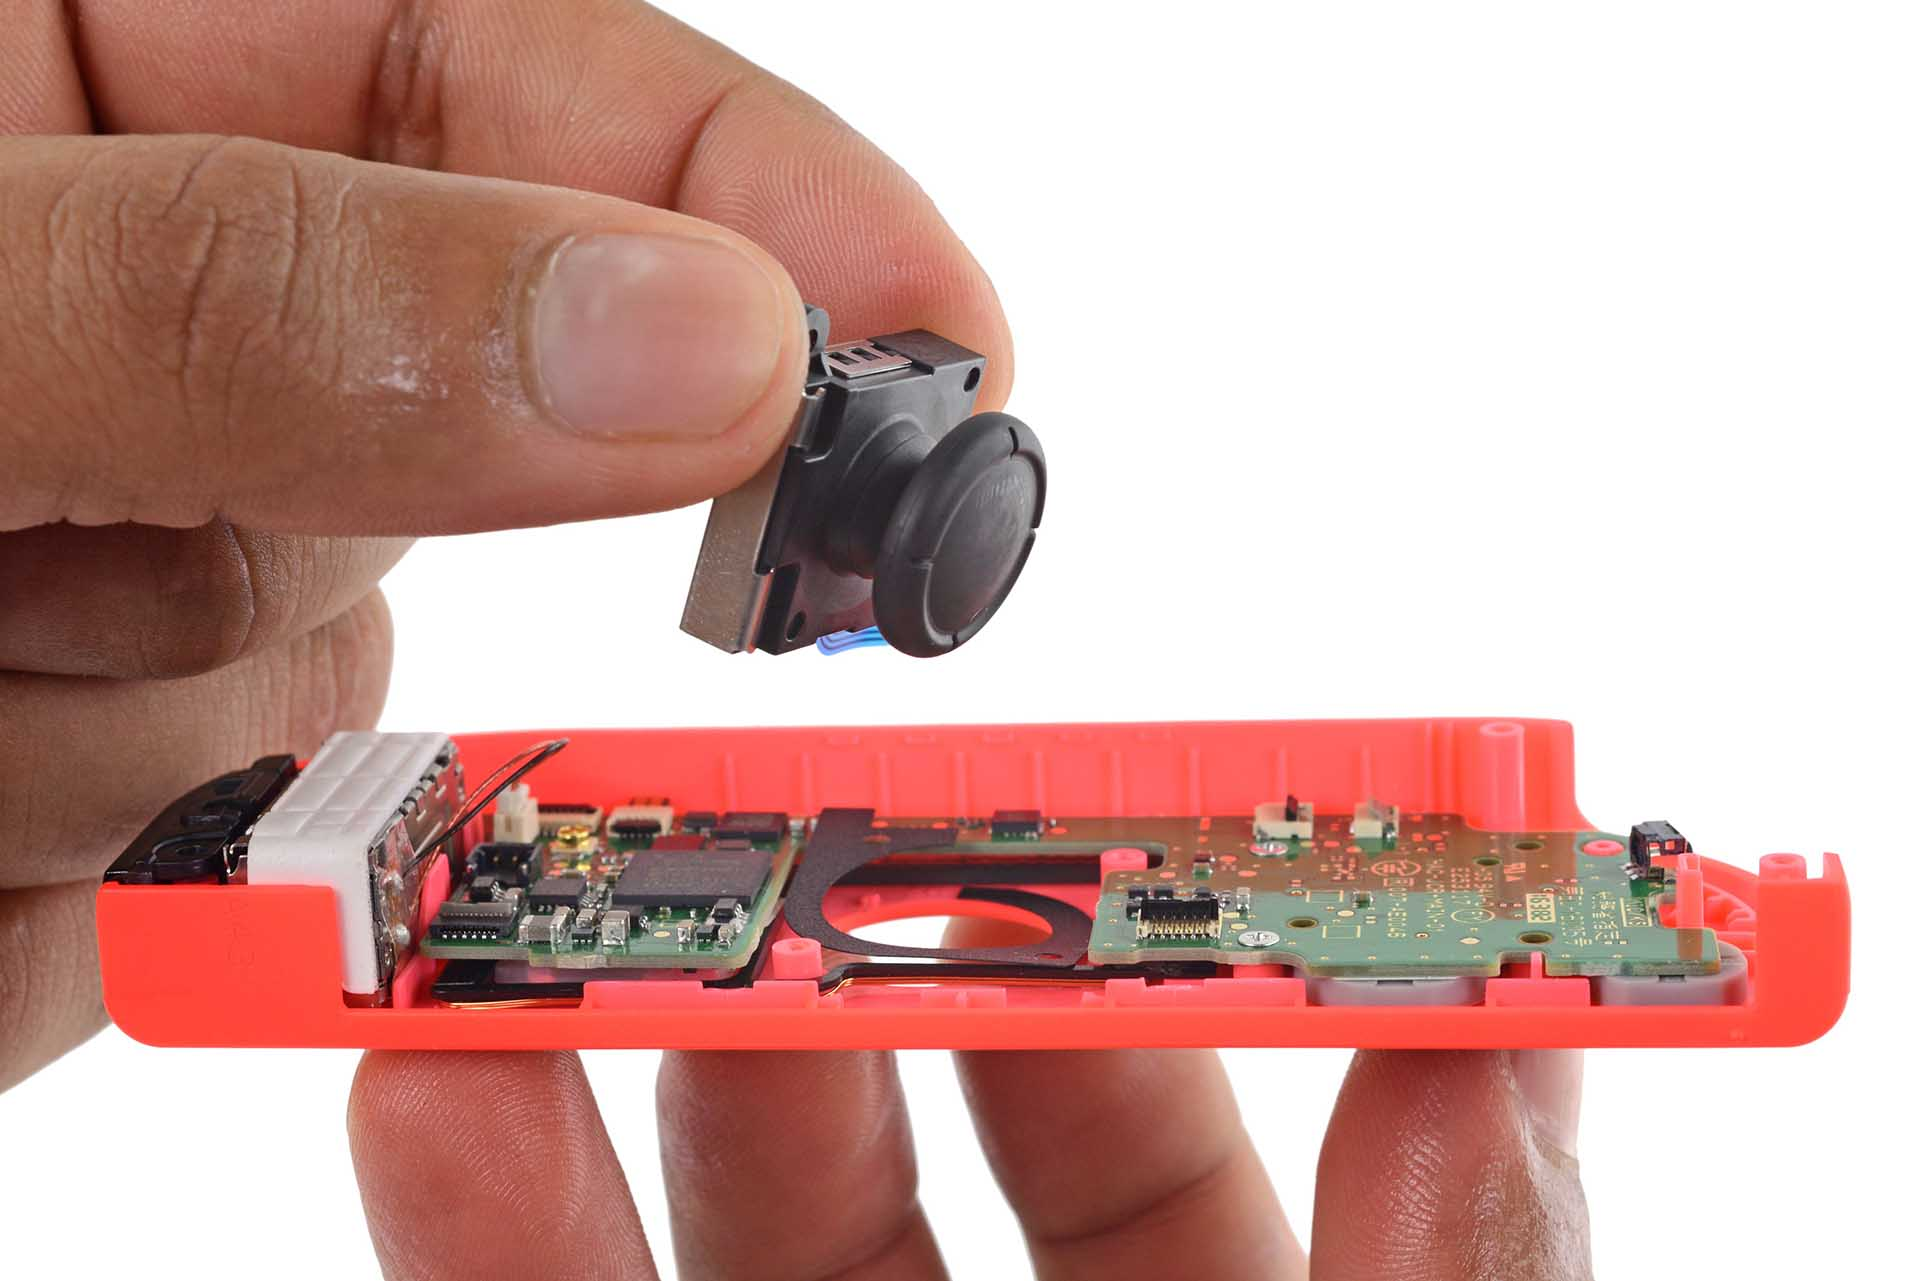 The joystick assembly inside a Nintendo Switch Joy-Con